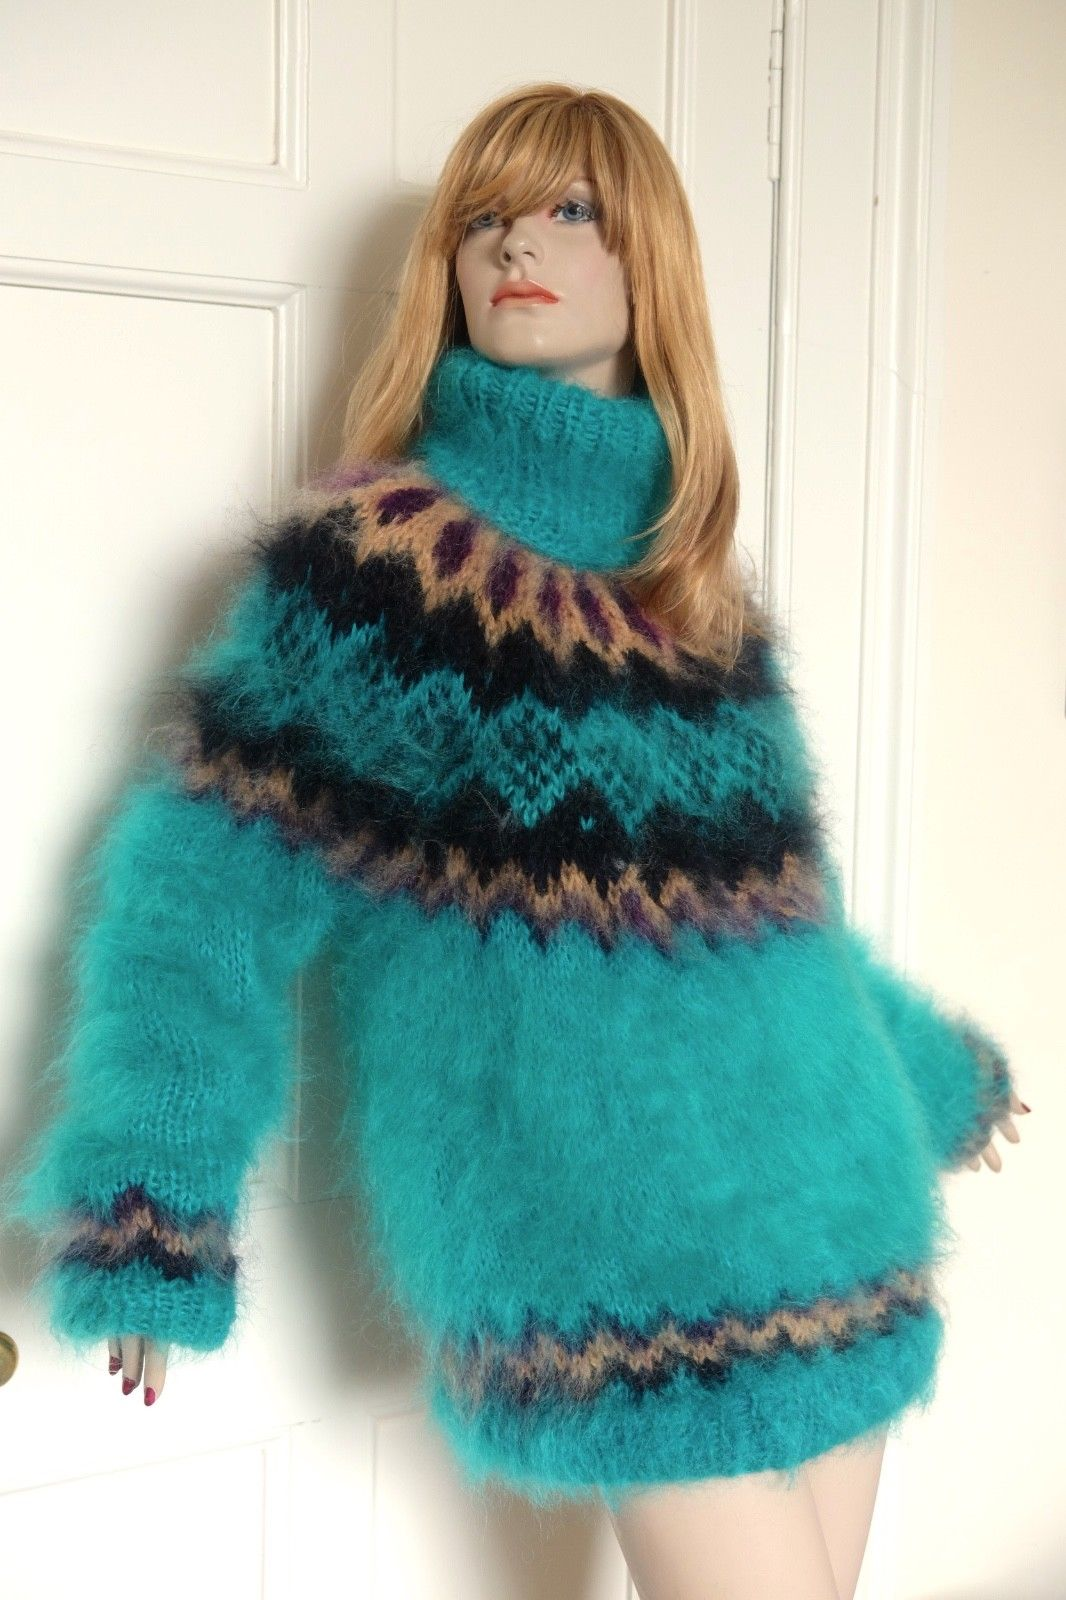 77854332_mohair-sweater-in-jade-green-with-a-nordic-pattern1.jpg